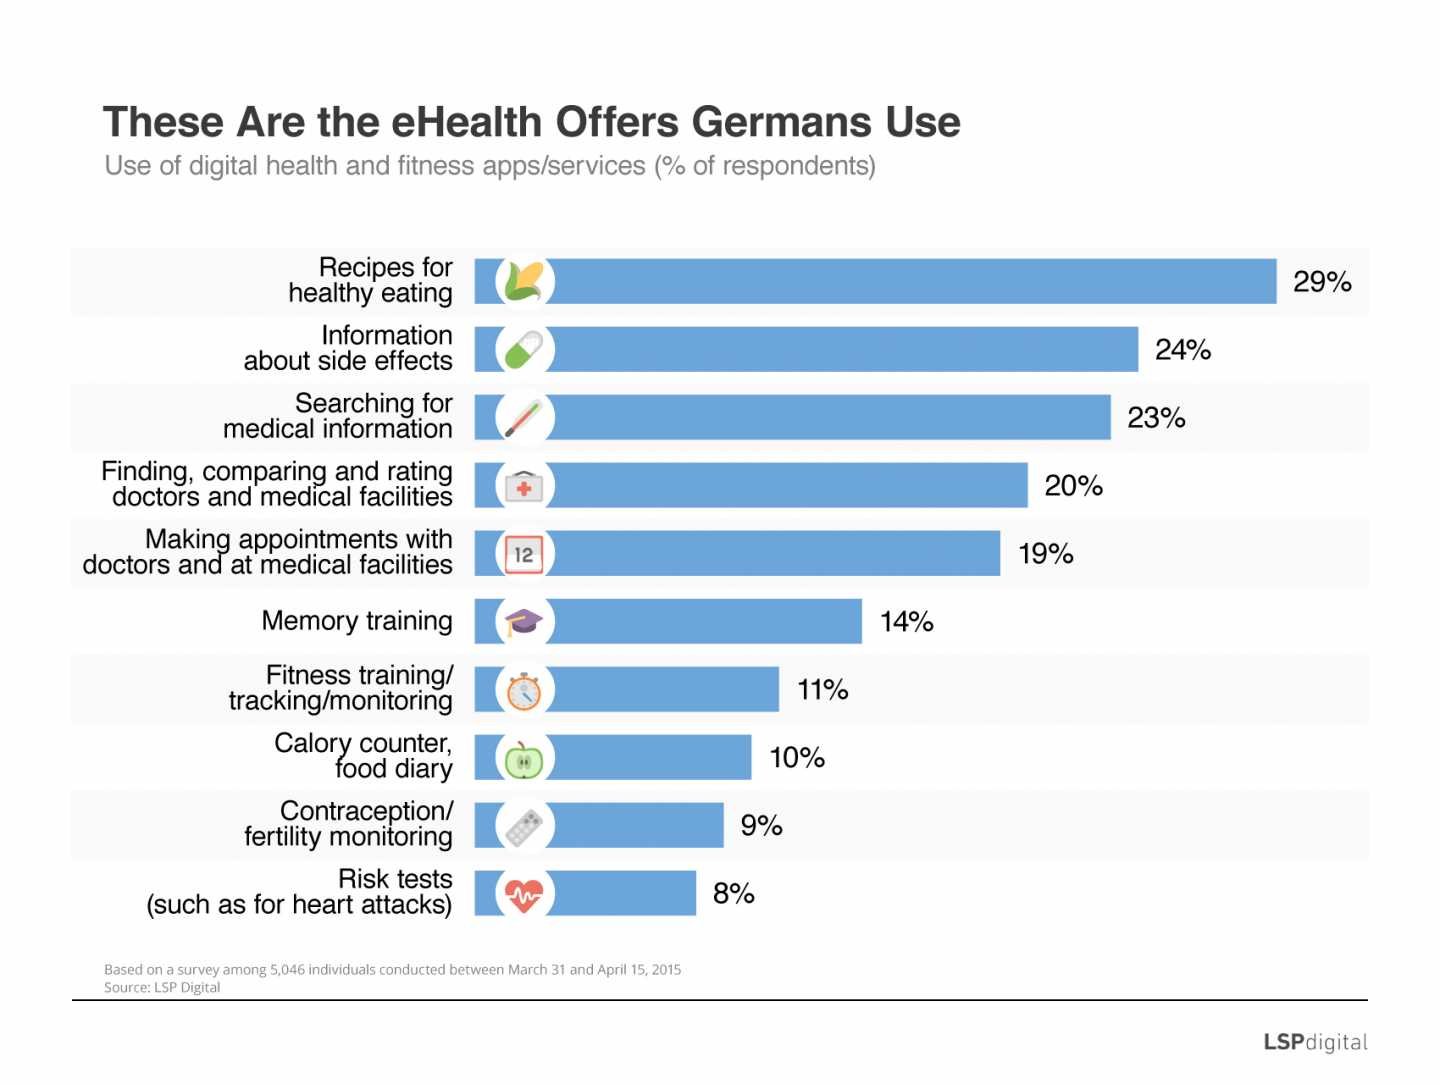 These Are the eHealth Offers Germans Use